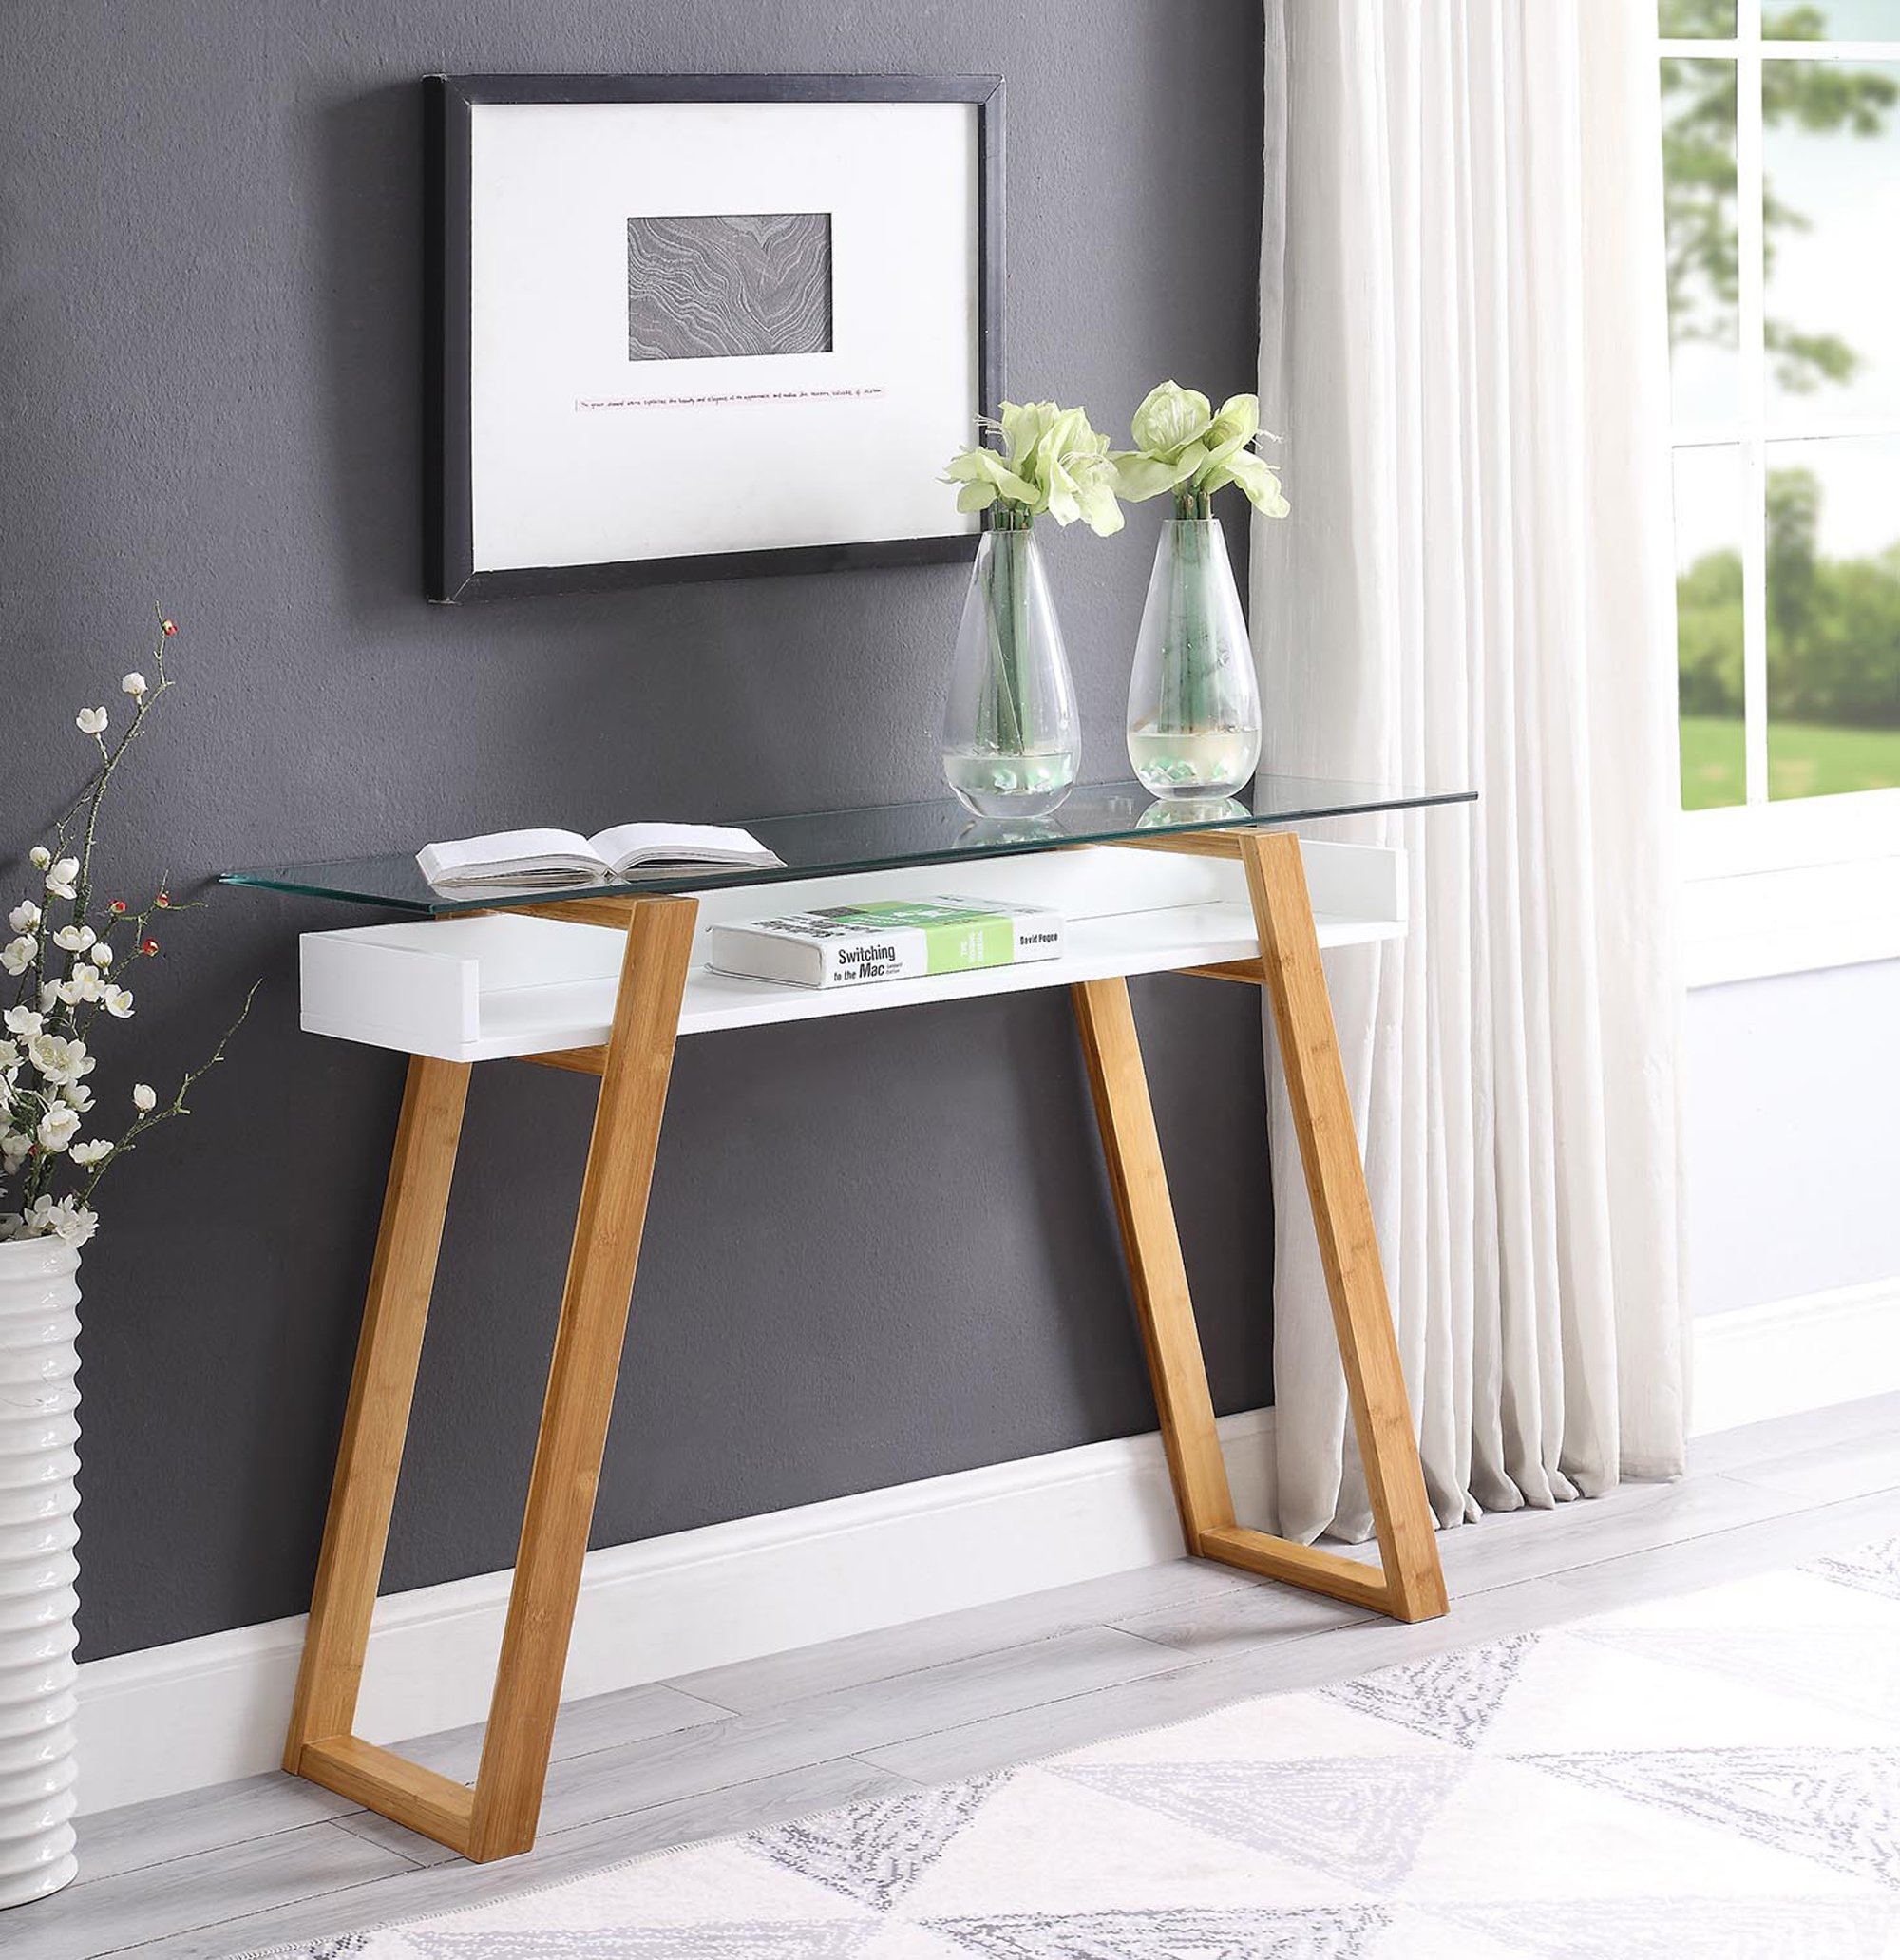 Convenience Concepts Console Table, White/Bamboo by Convenience Concepts